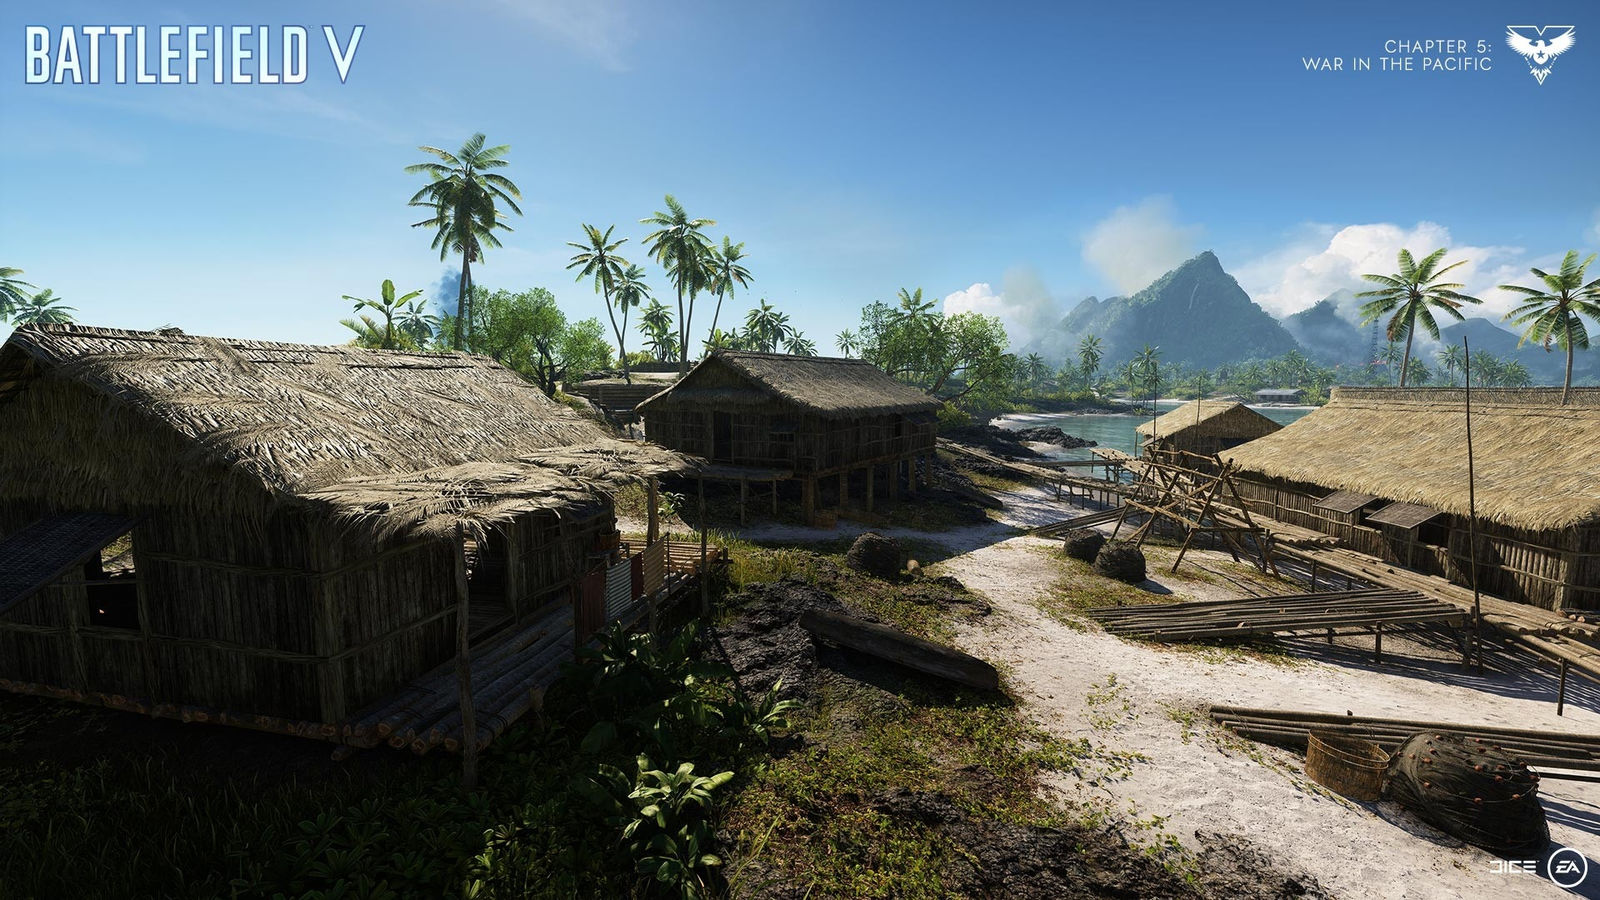 Battlefield V 5 (Origin) Region Free